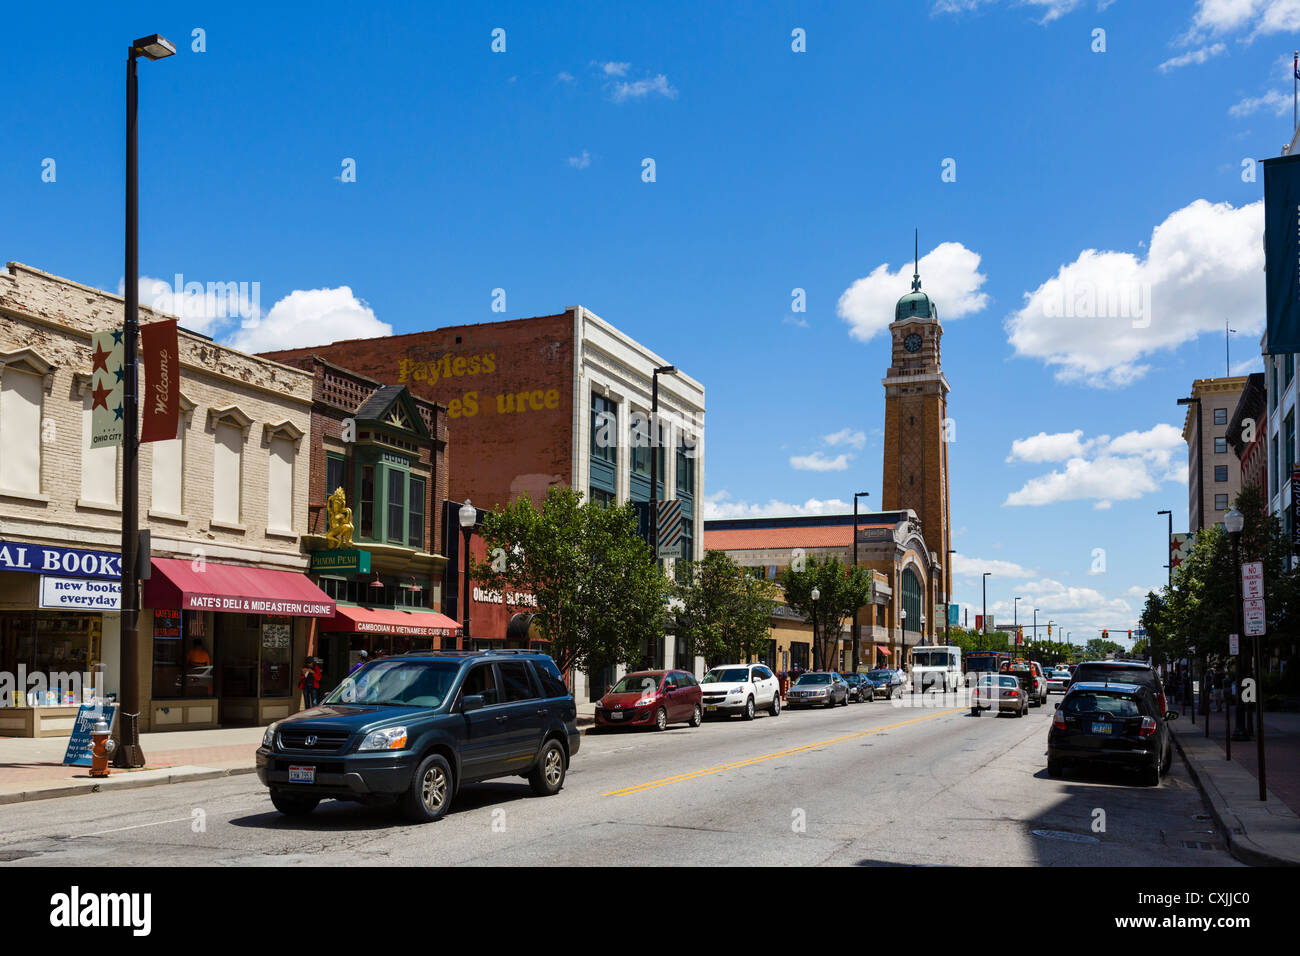 West 25th Street looking towards Market Square, Ohio City district, Cleveland, Ohio, USA - Stock Image